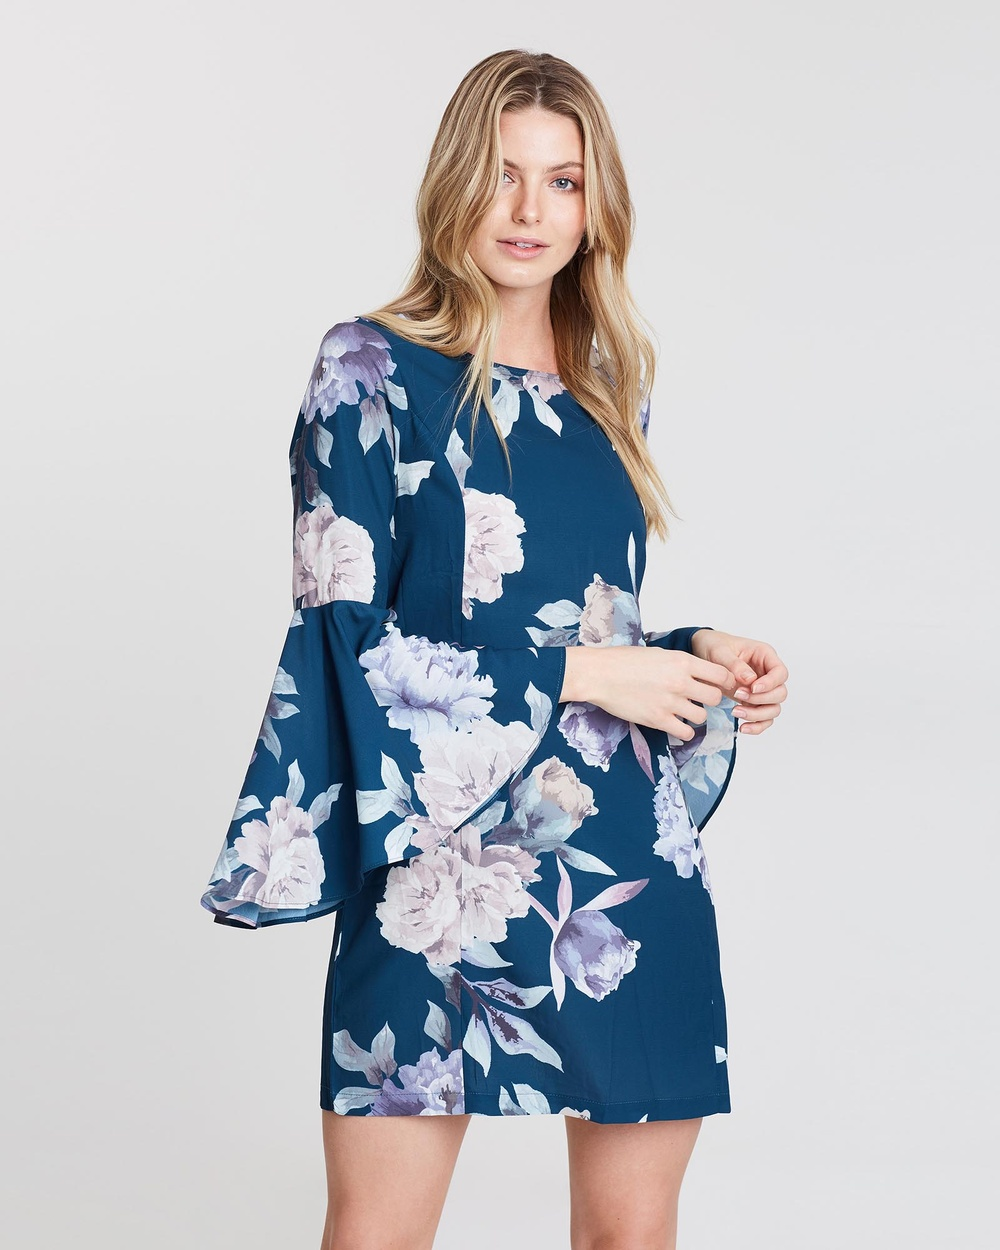 St. Frock Teal With Floral Print Lyon Dress